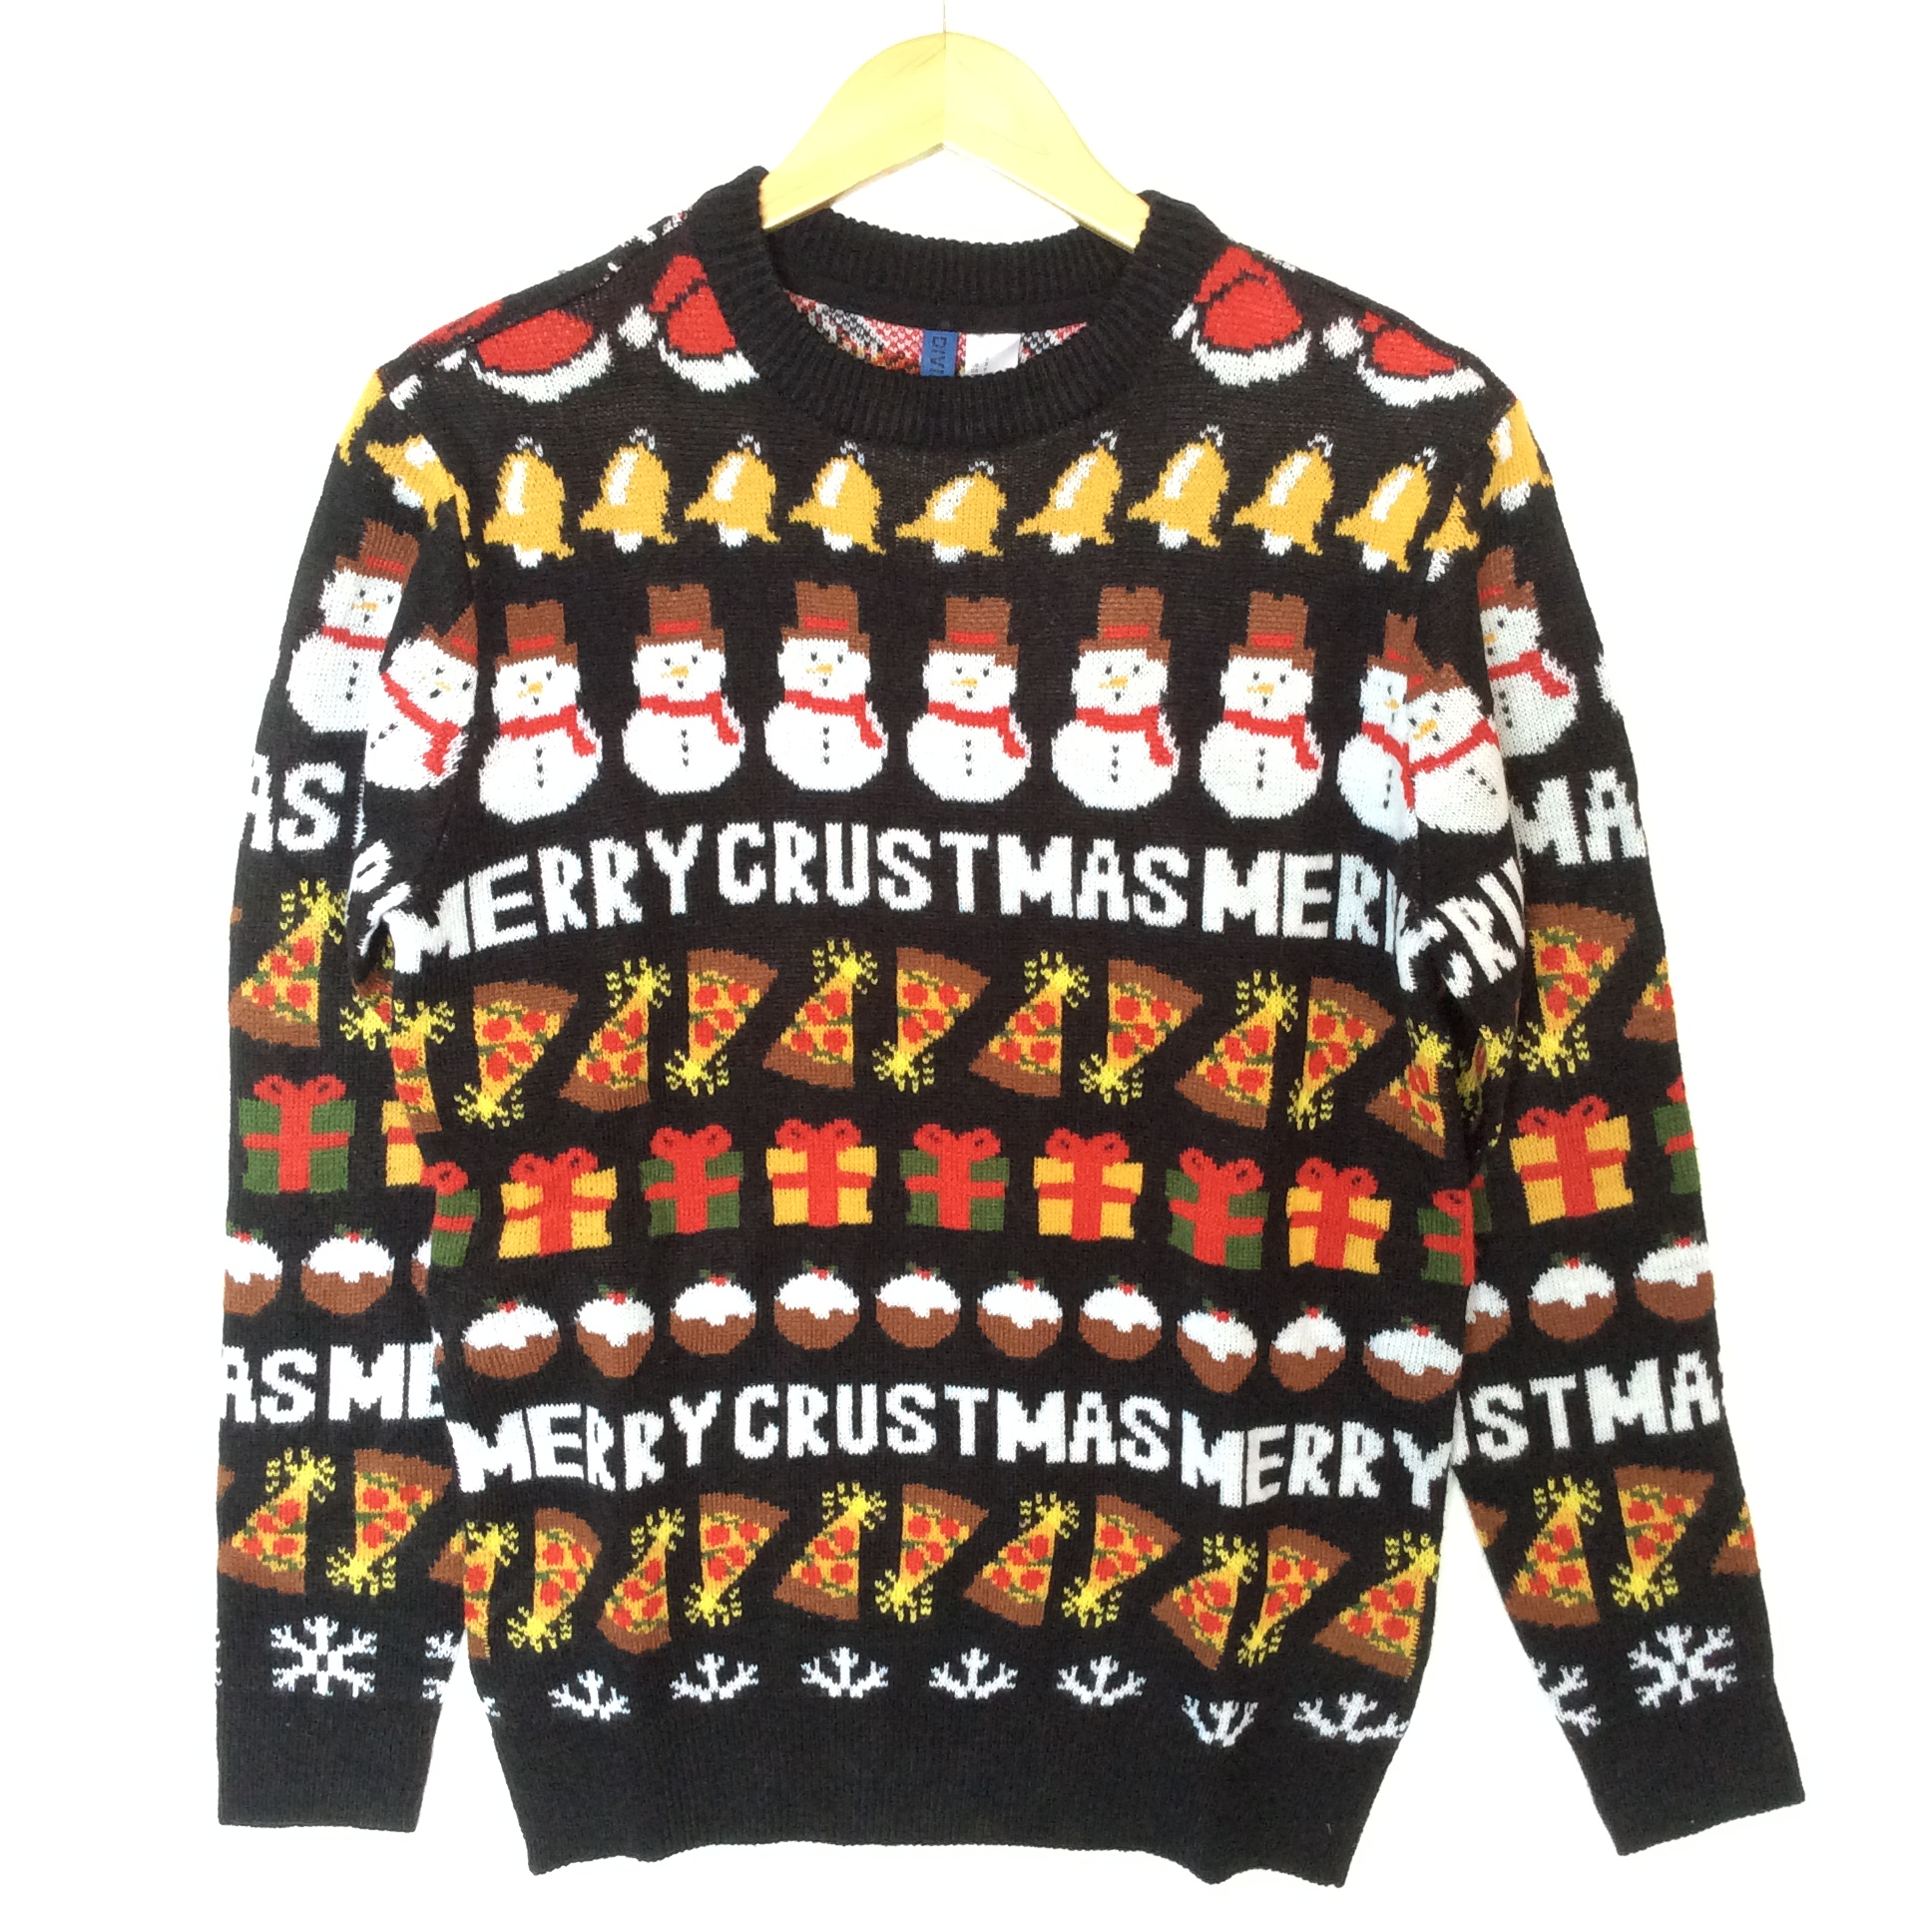 Merry Crustmas Pizza Lover Tacky Ugly Christmas Sweater - The Ugly ...